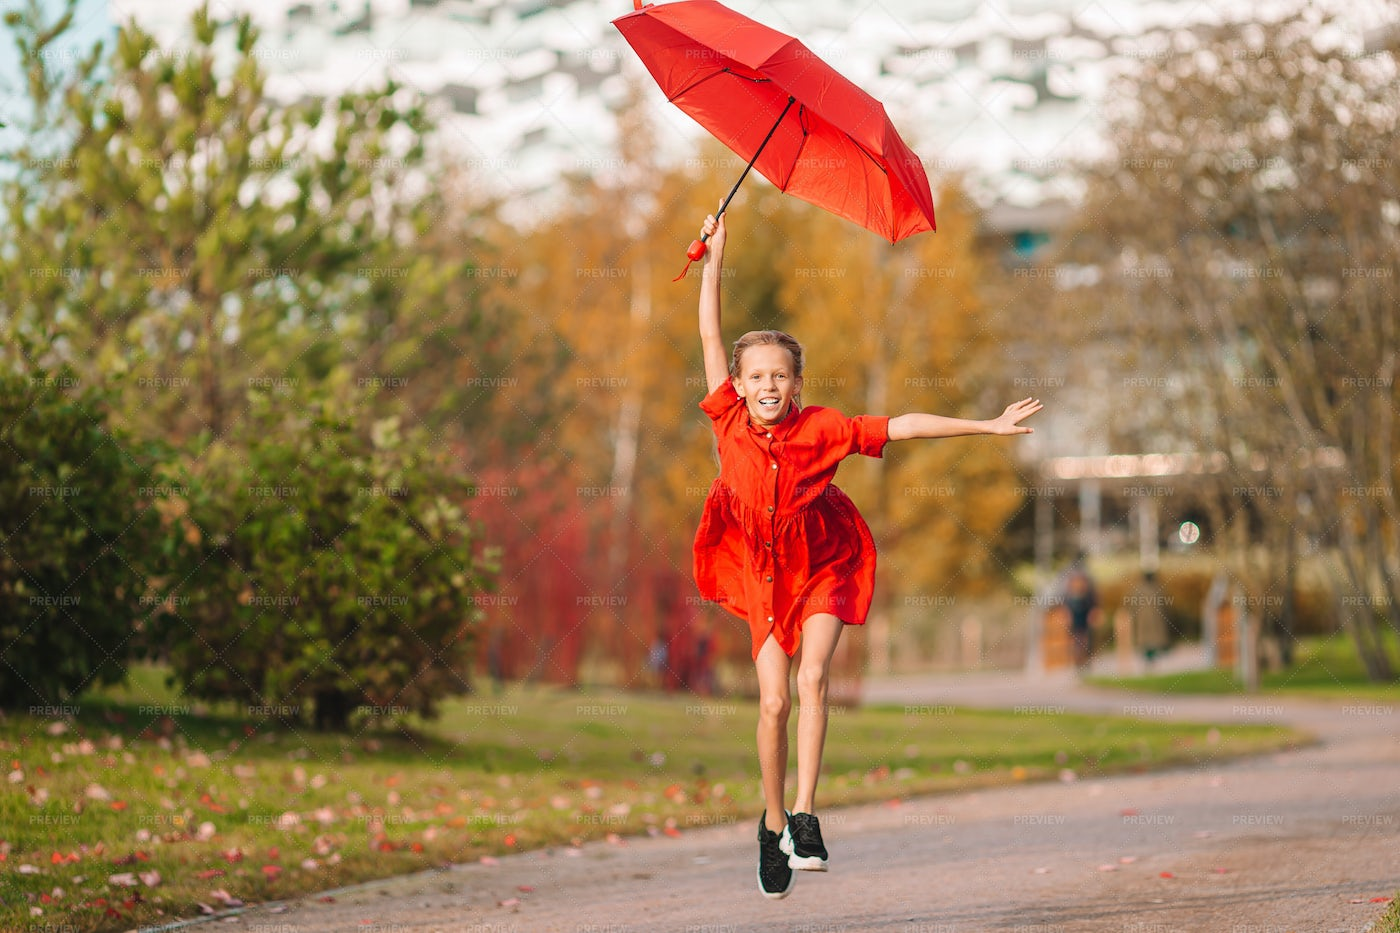 Leaping With Red Umbrella: Stock Photos